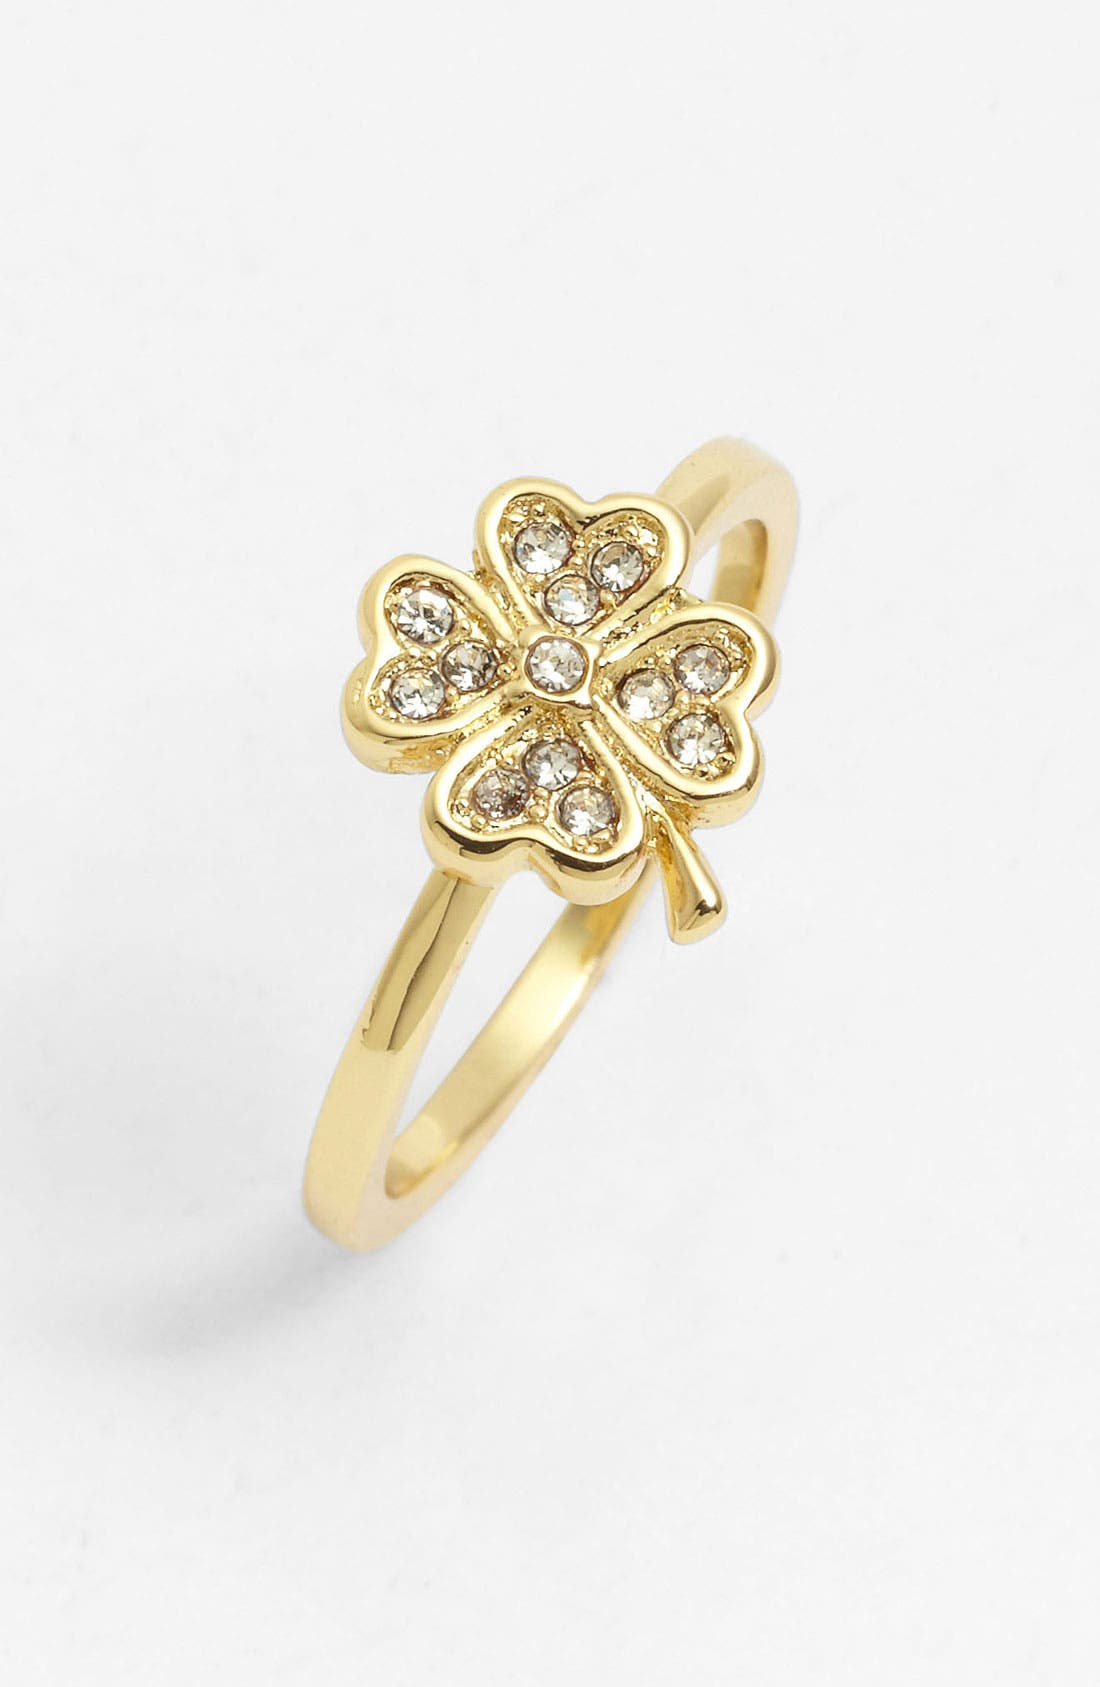 Main Image - Ariella Collection Pavé Clover Ring